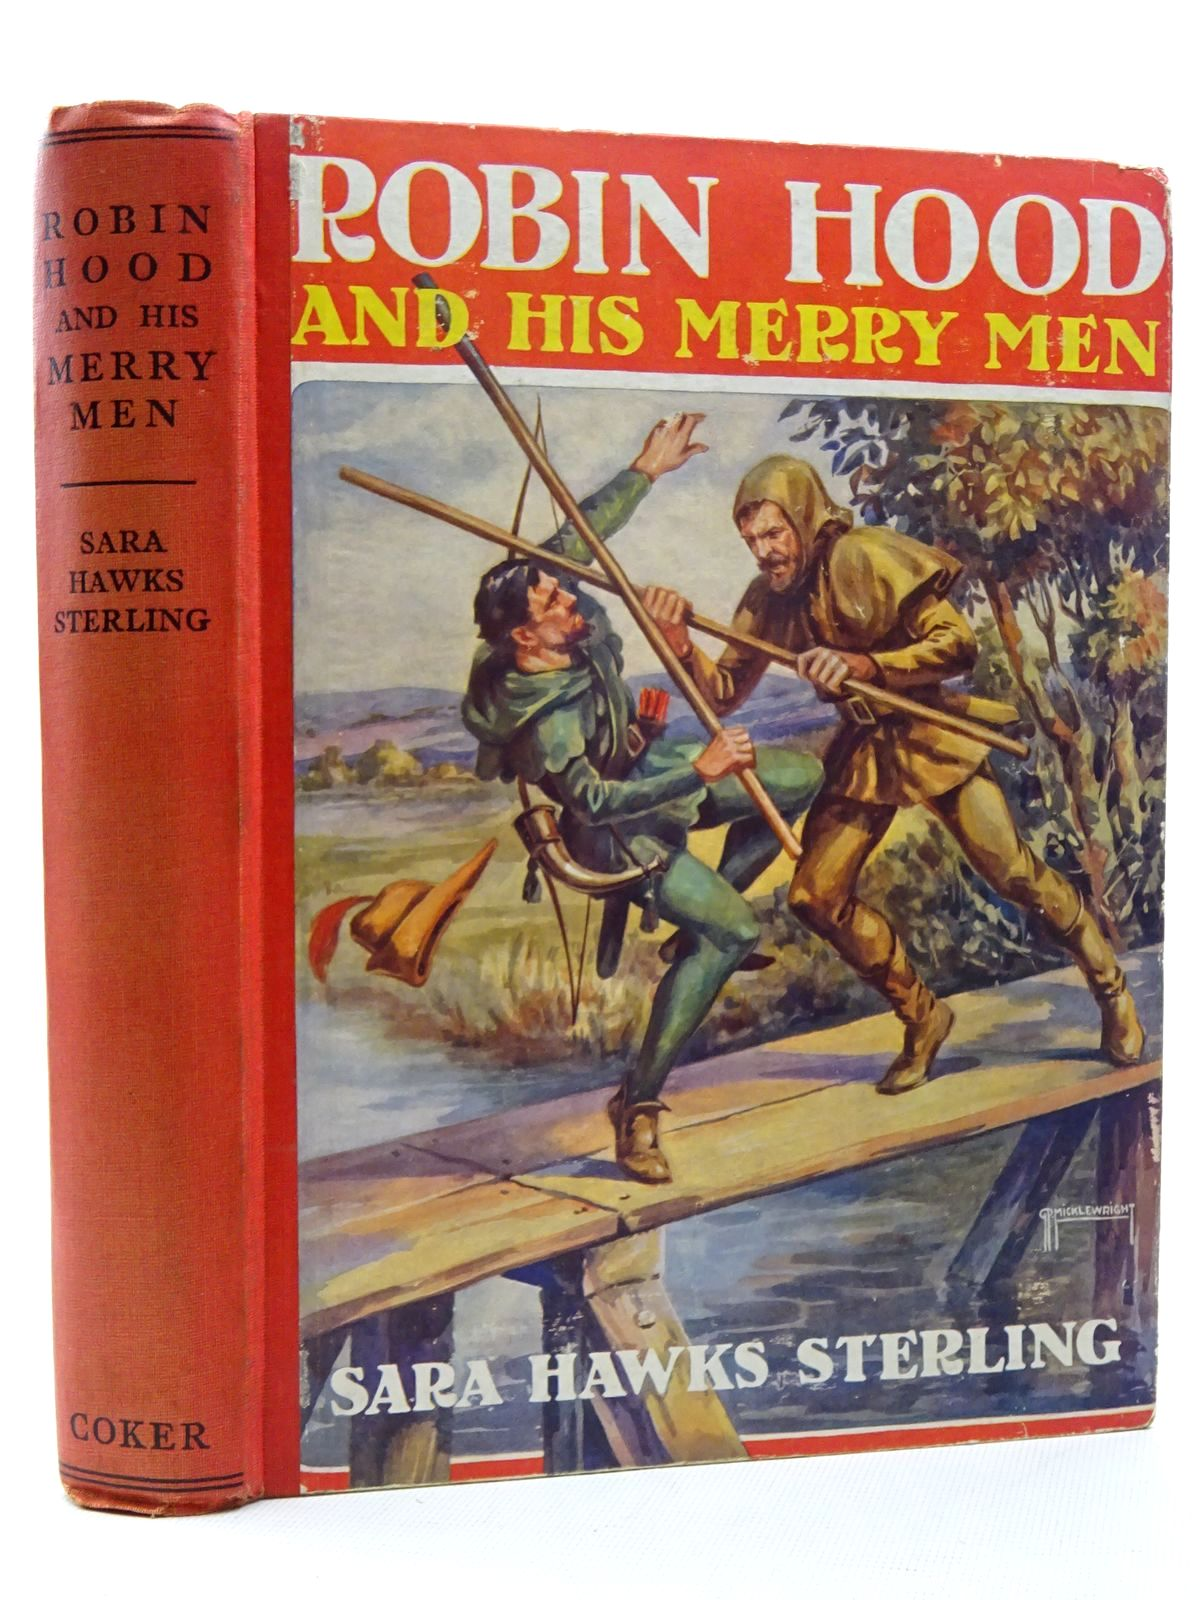 Photo of ROBIN HOOD AND HIS MERRY MEN written by Sterling, Sara Hawks illustrated by Wheelwright, Rowland published by J. Coker & Co. Ltd. (STOCK CODE: 2125029)  for sale by Stella & Rose's Books